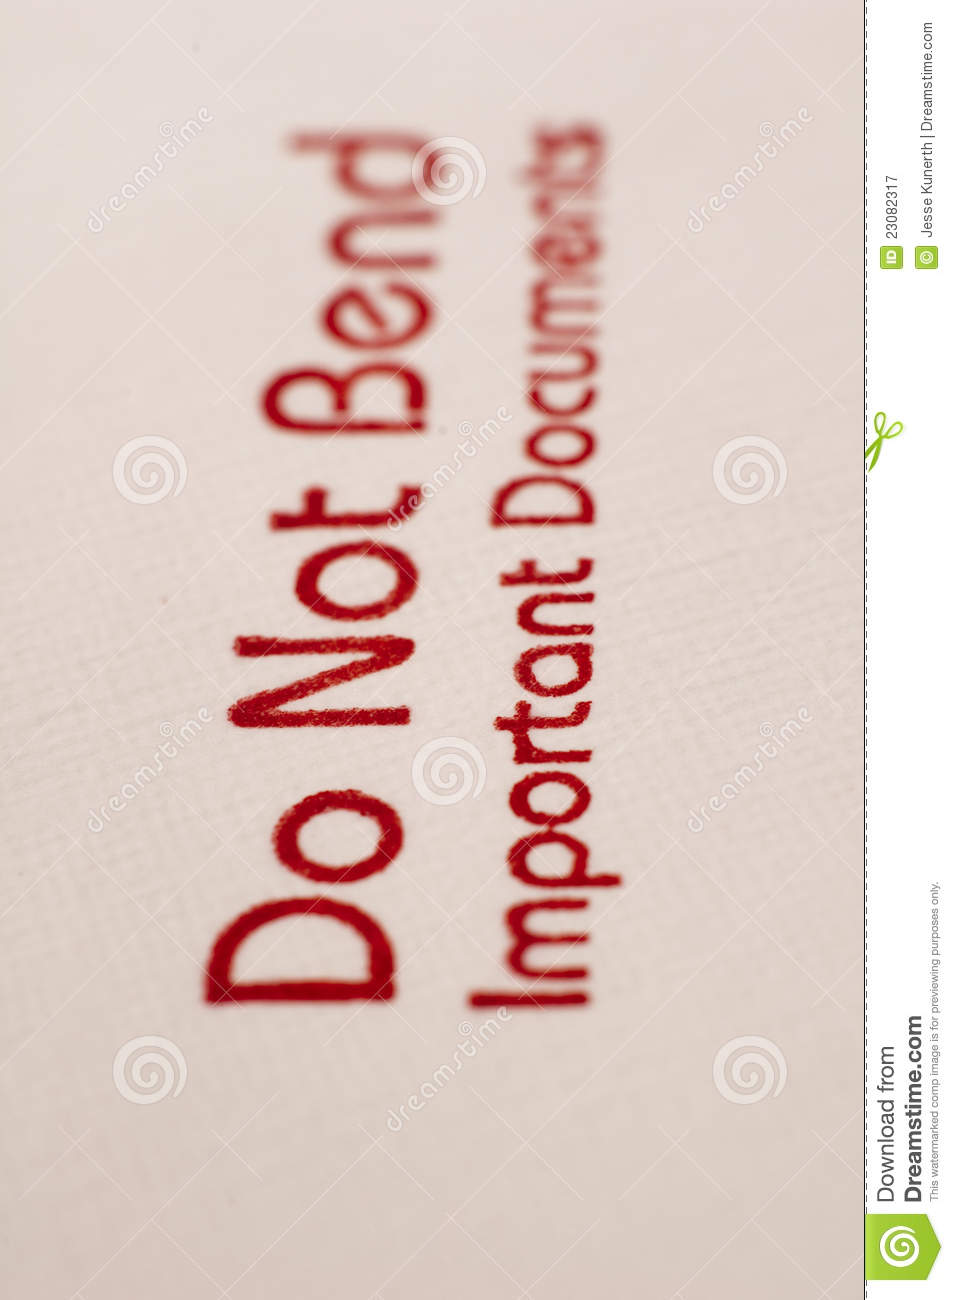 Do Not Bend Stamp Royalty Free Stock Photography   Image  23082317